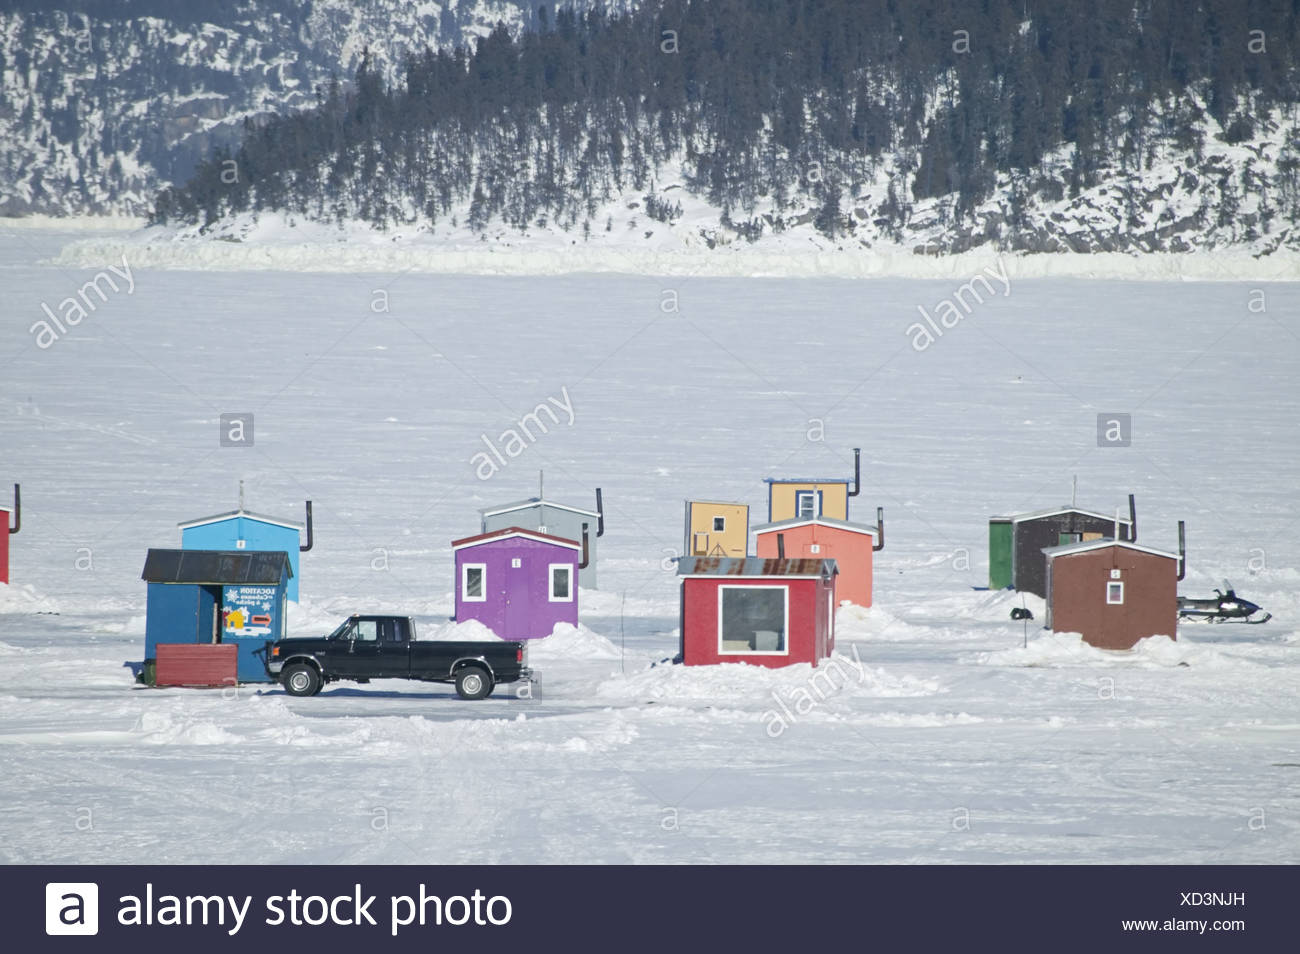 Canada Quebec Saguenay fjord fisher-alms Pick-up North America Saguenay-St. Lawrence Marine park lake Saint Jean houses little - Stock Image